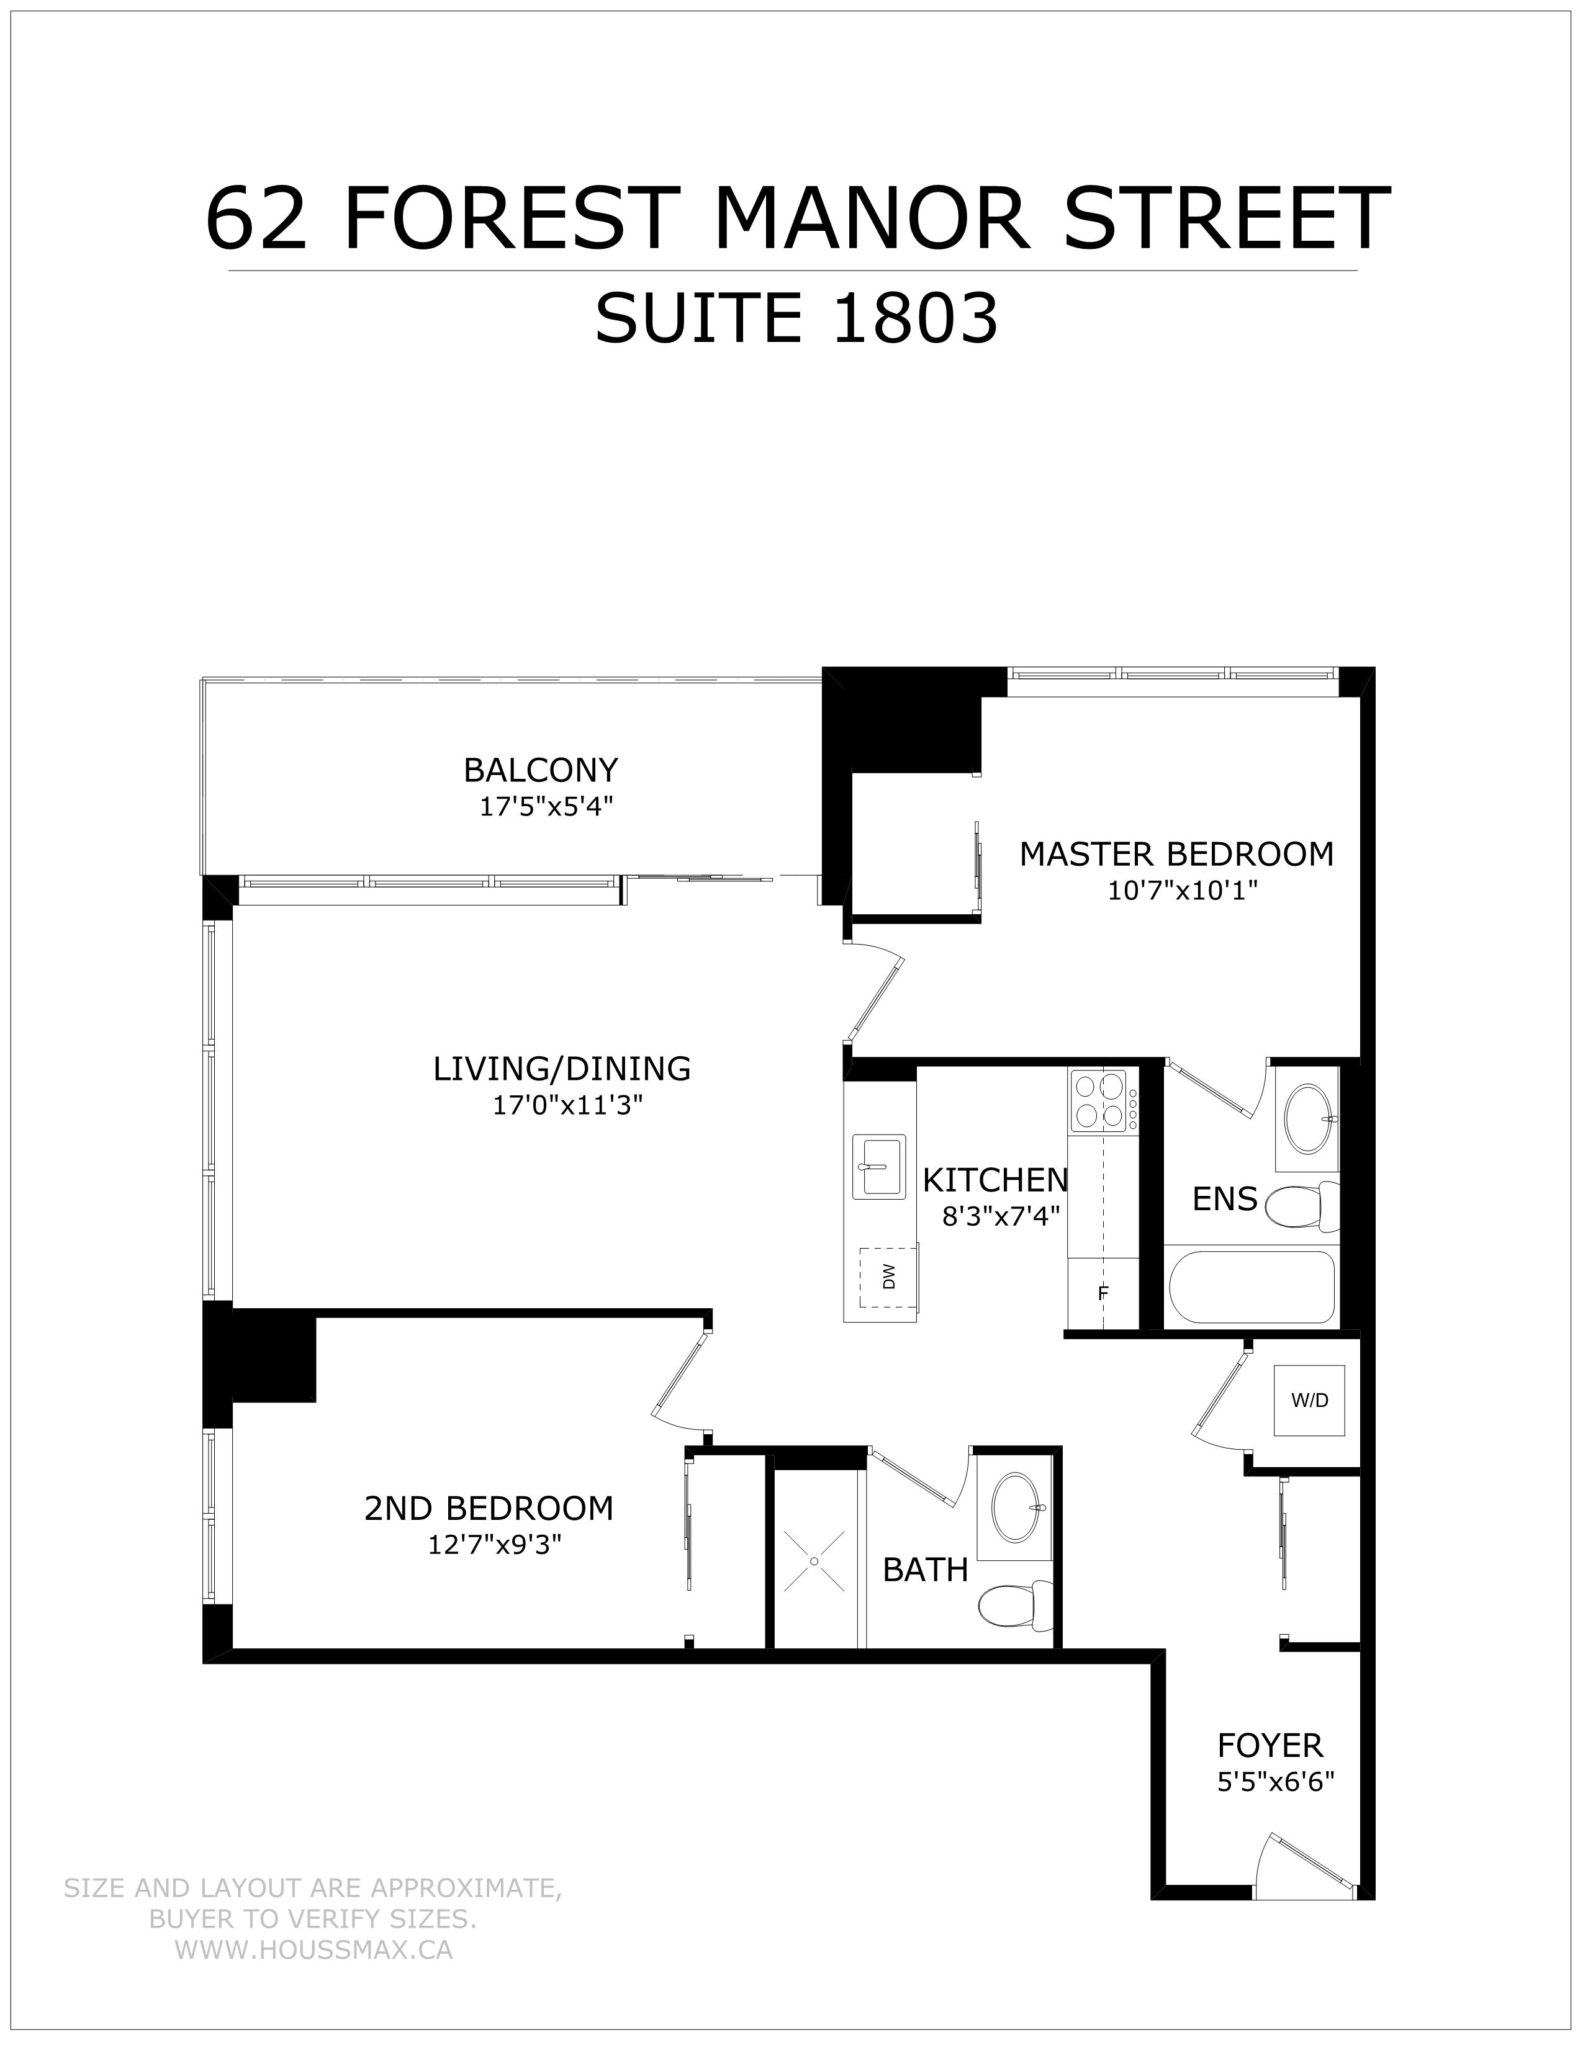 Floor Plans for 62 Forest Manor Rd Unit 1803, Toronto.